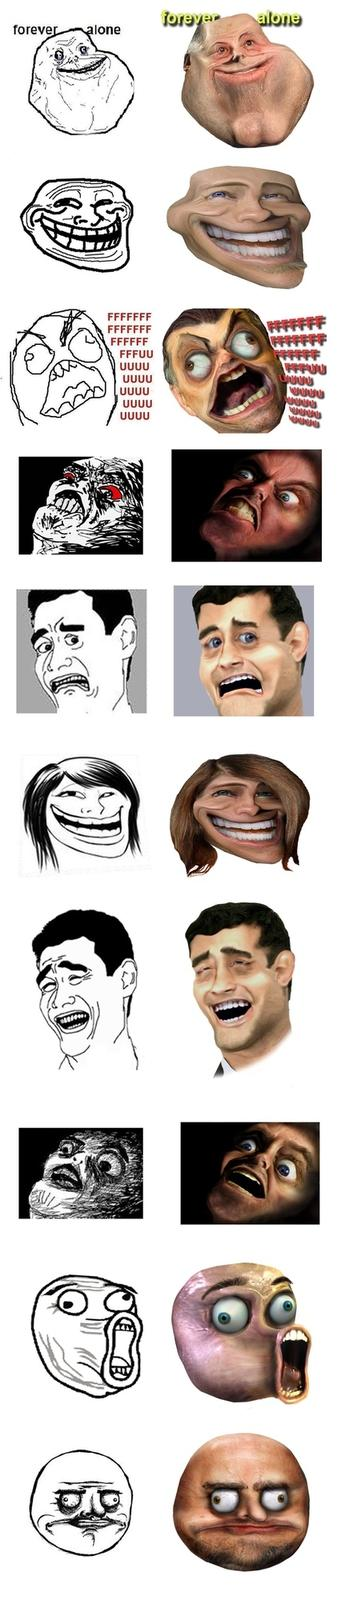 10-reaction-faces-untooned-21522-1292857122-3.jpg